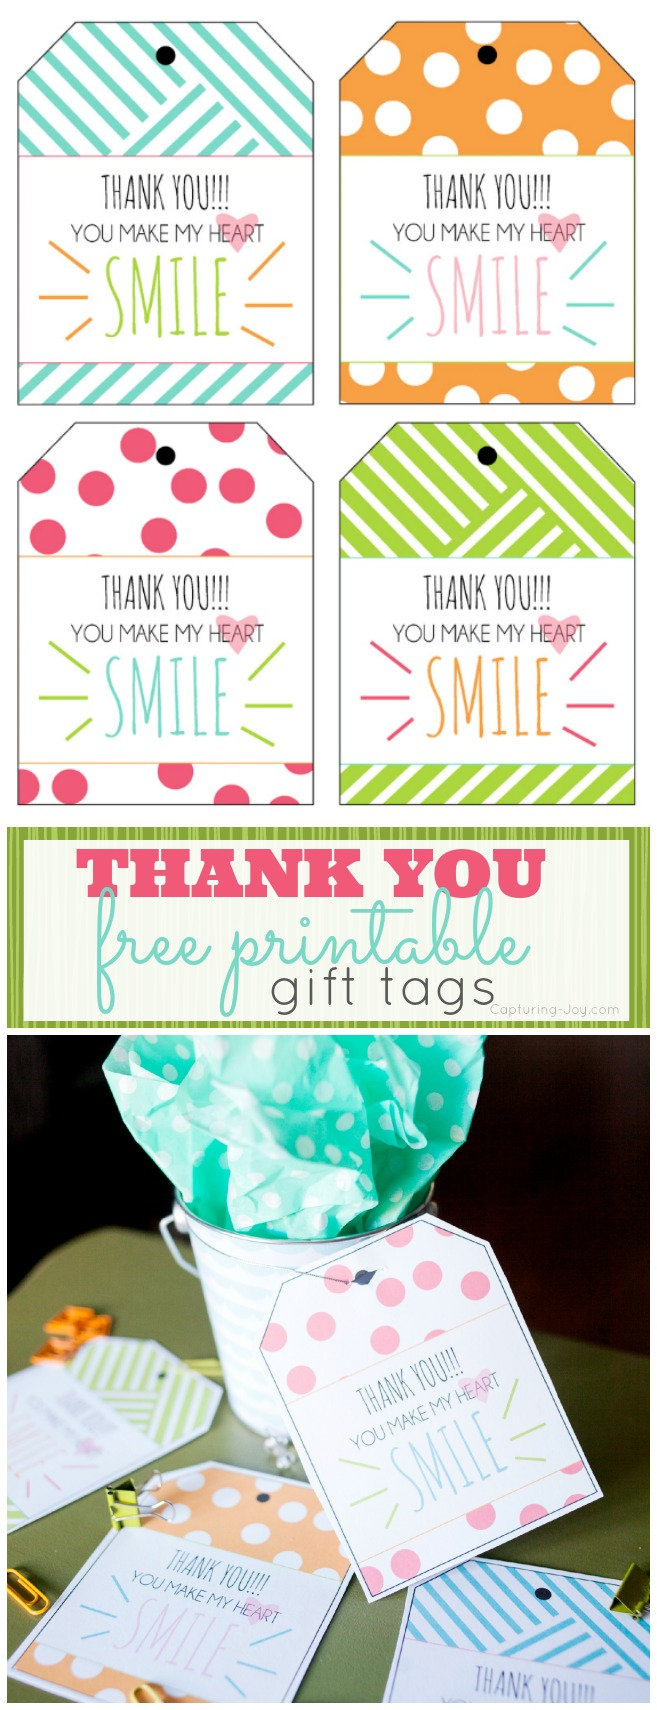 It's just an image of Transformative Thank You Tags Printable